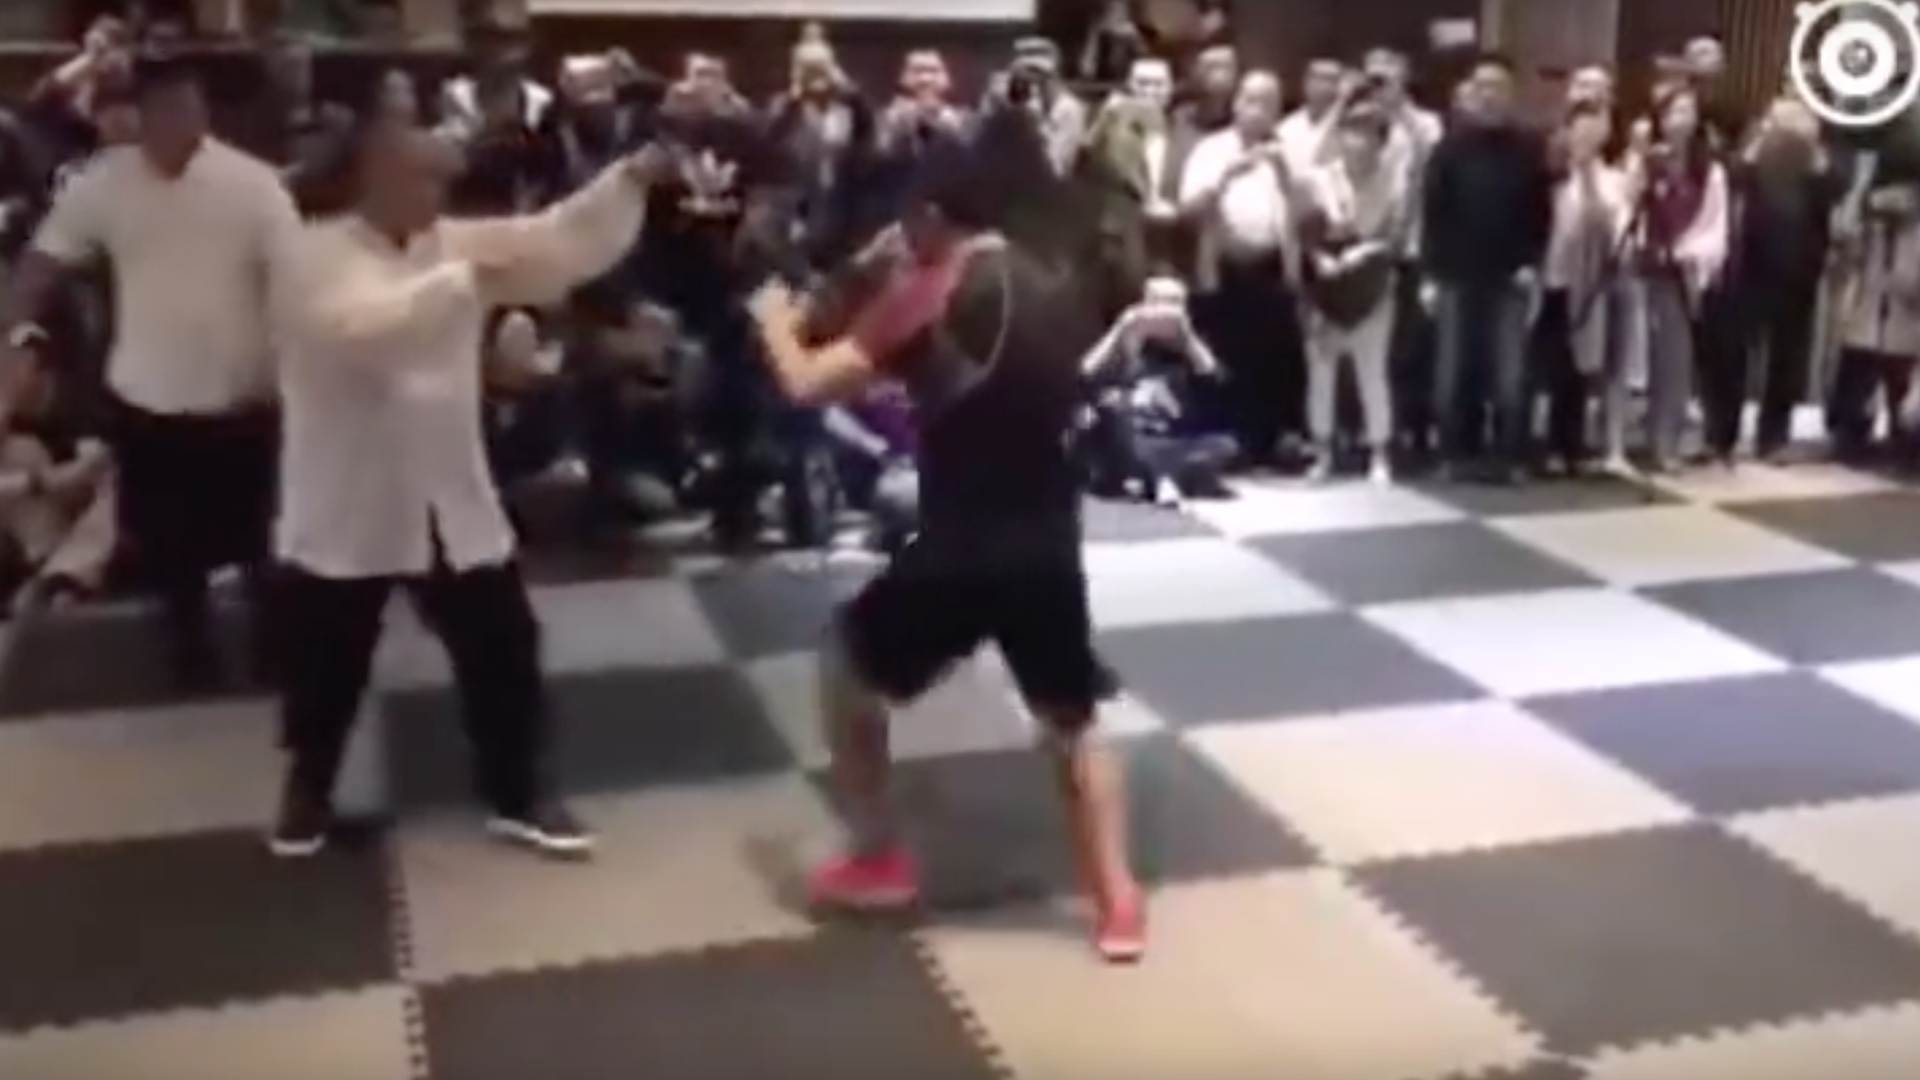 Tai Chi is no match for MMA